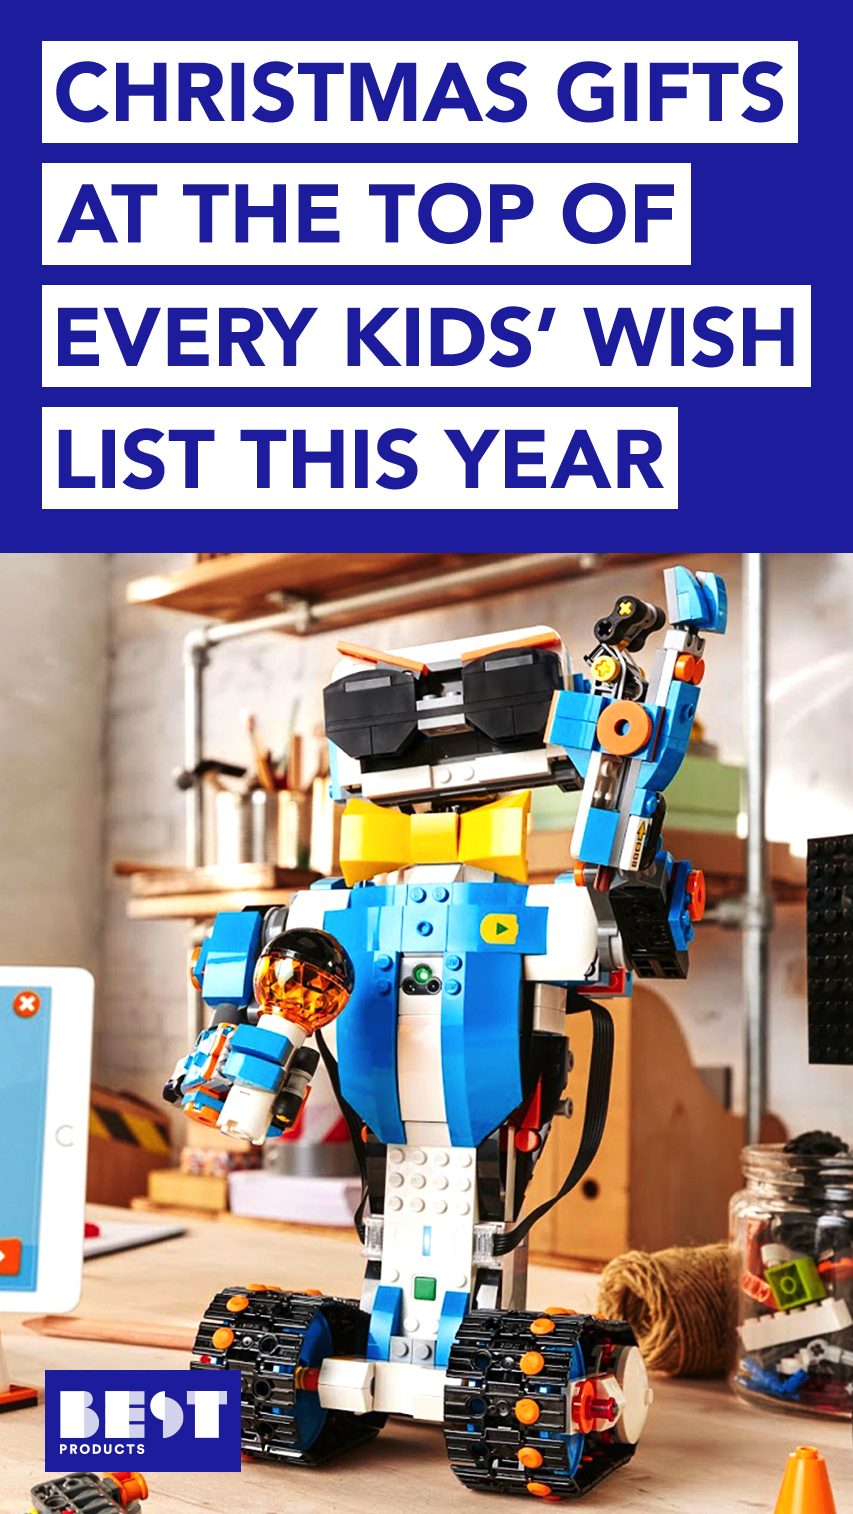 50+ Best Christmas Gifts For Kids in 2017 - Great Gift Ideas for ...